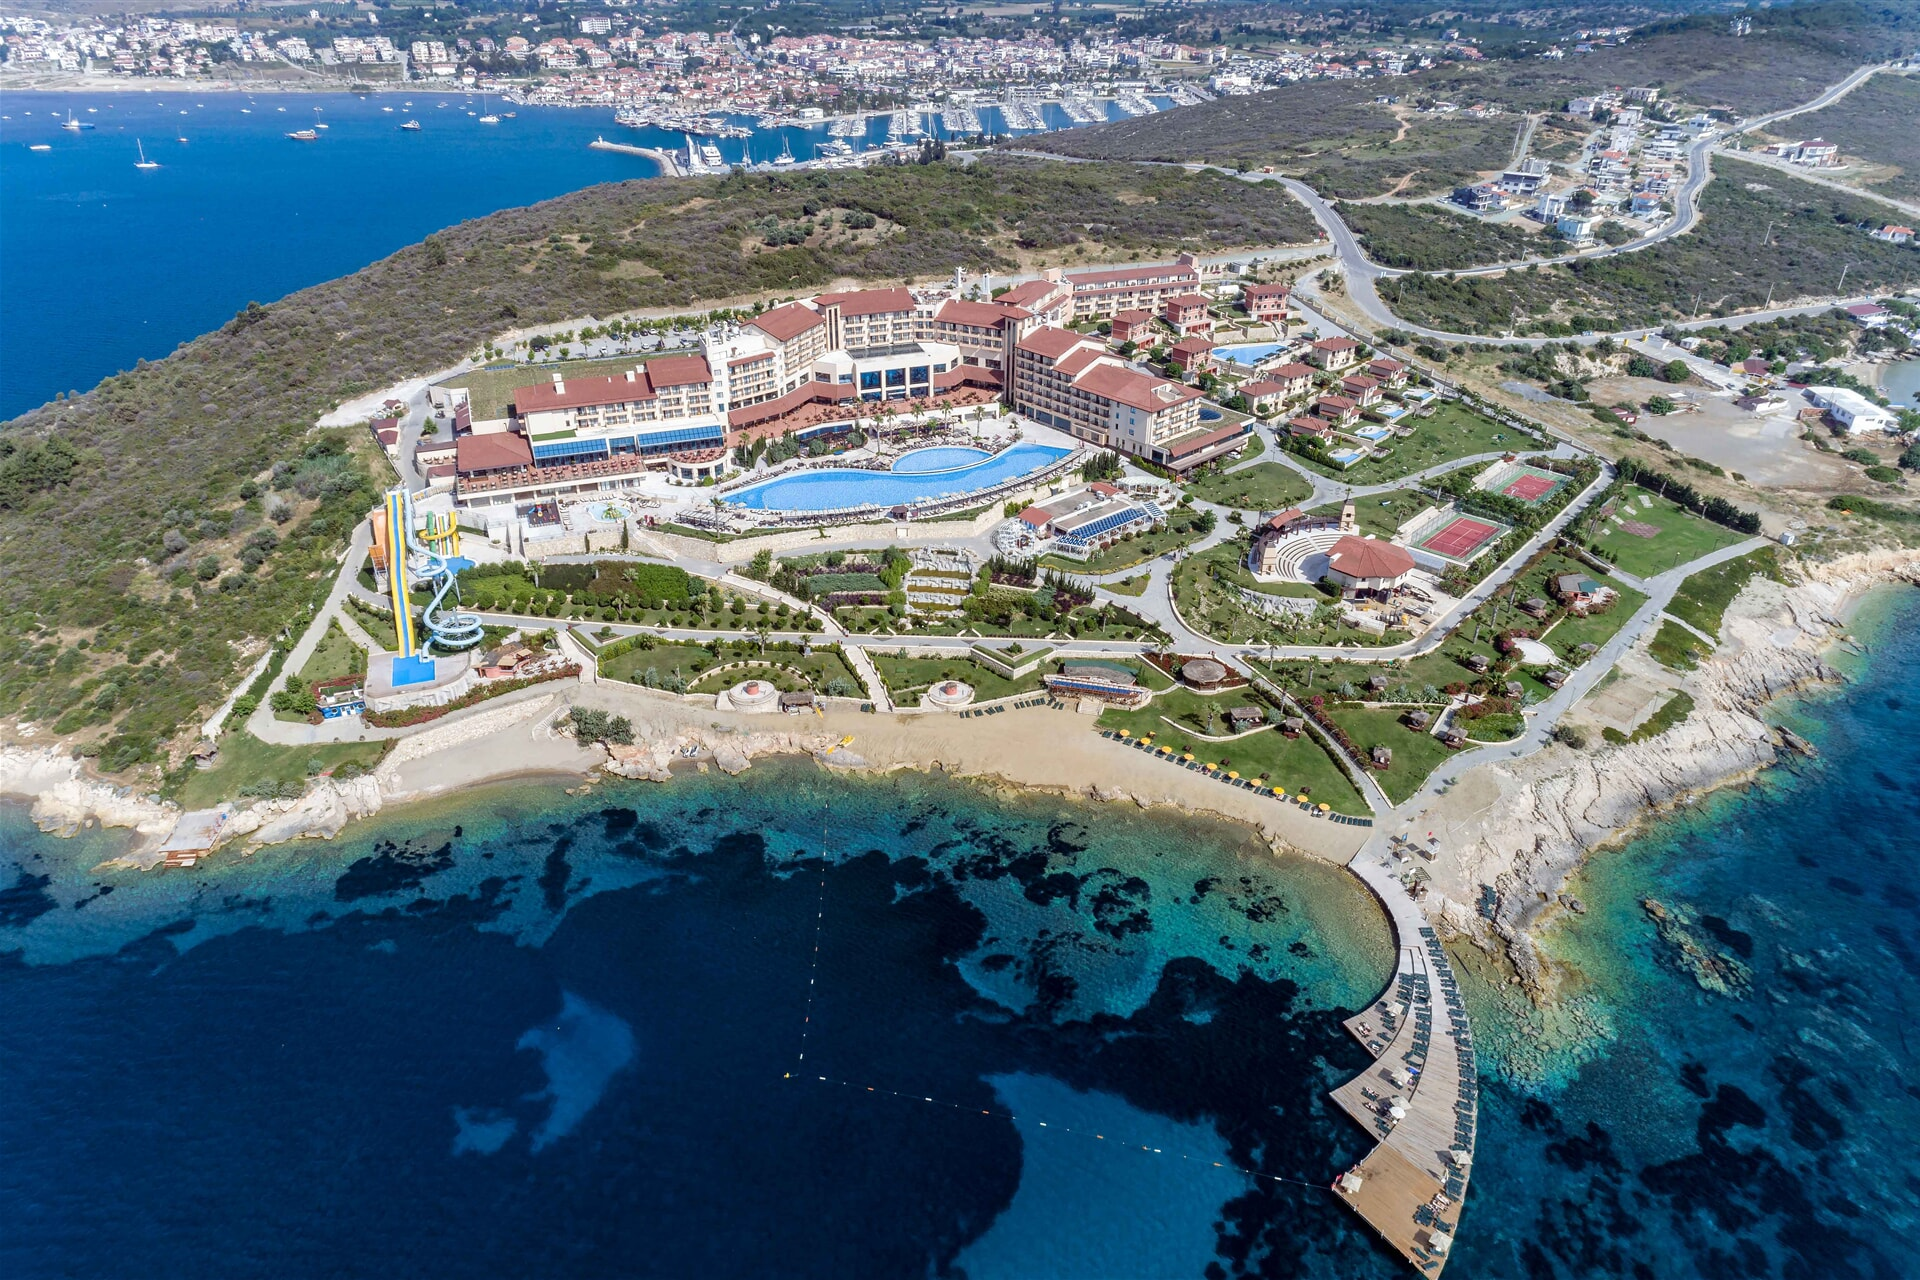 EUPHORIA AEGEAN RESORT AND THERMAL HOTEL – Standart Room Land View